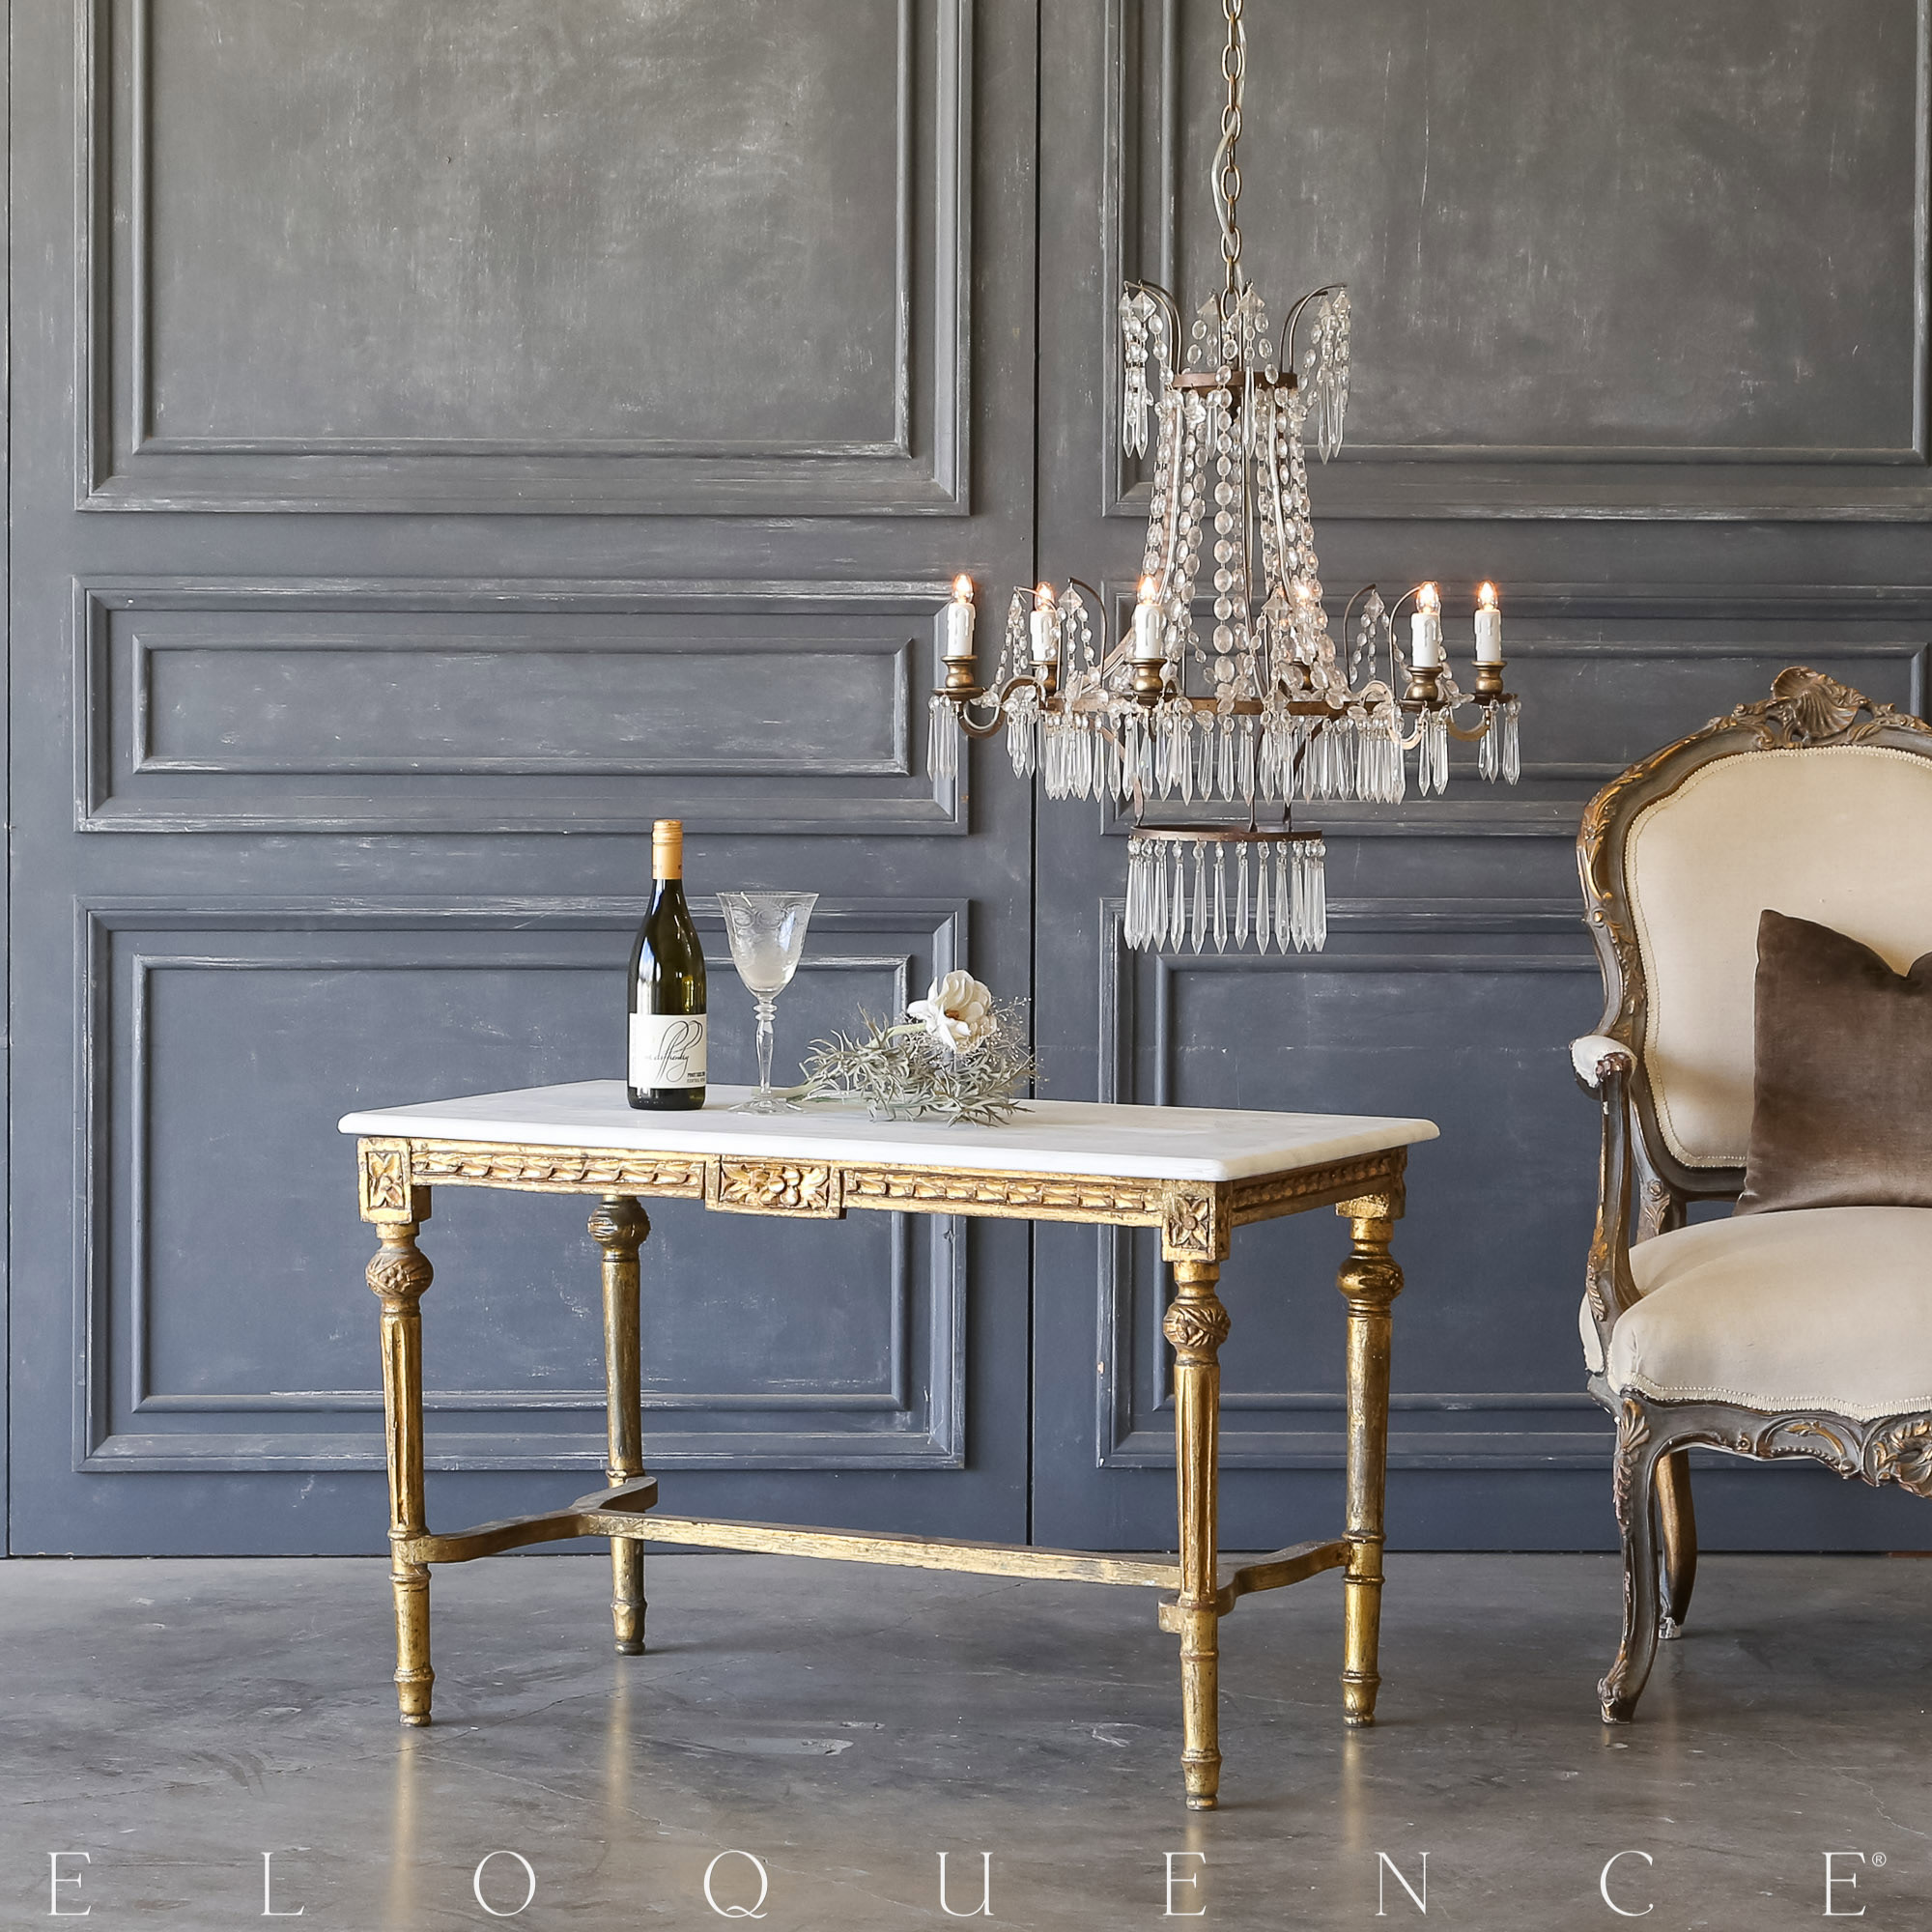 Eloquence® Vintage Gold Louis XVI Coffee Table: 1940